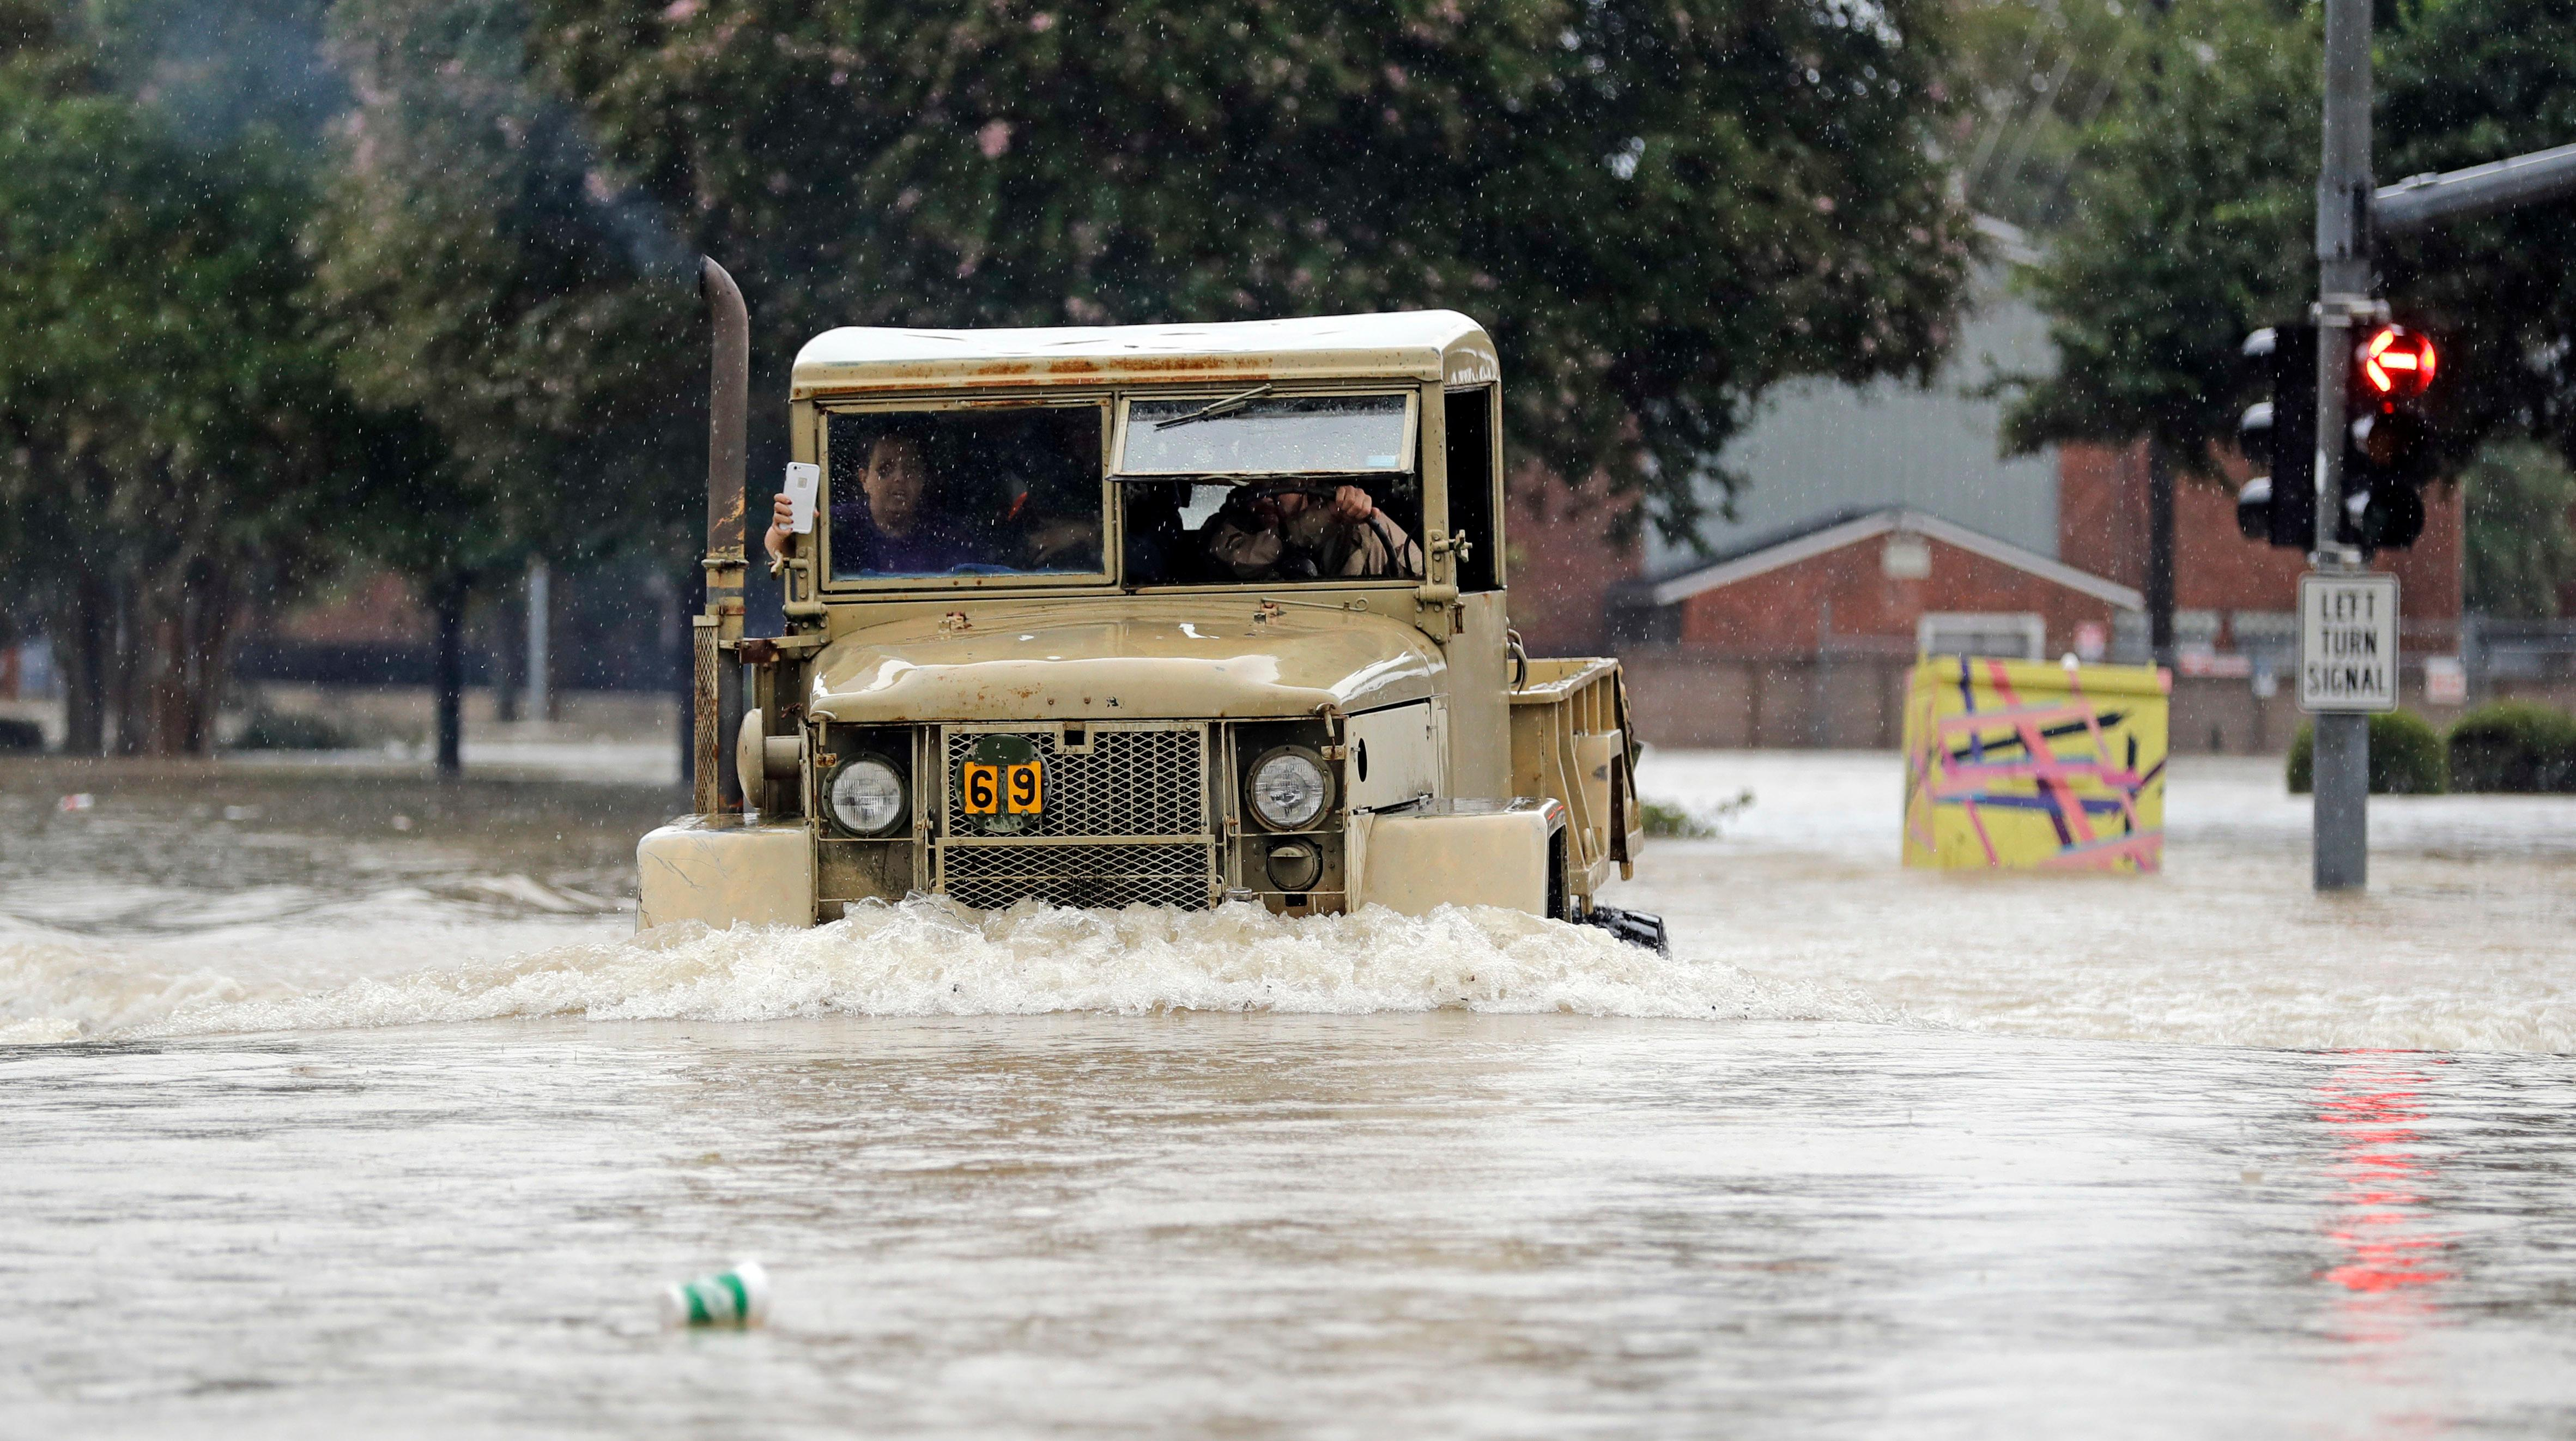 A truck pushes through floodwaters from Tropical Storm Harvey on Sunday, Aug. 27, 2017, in Houston, Texas. (AP Photo/David J. Phillip)